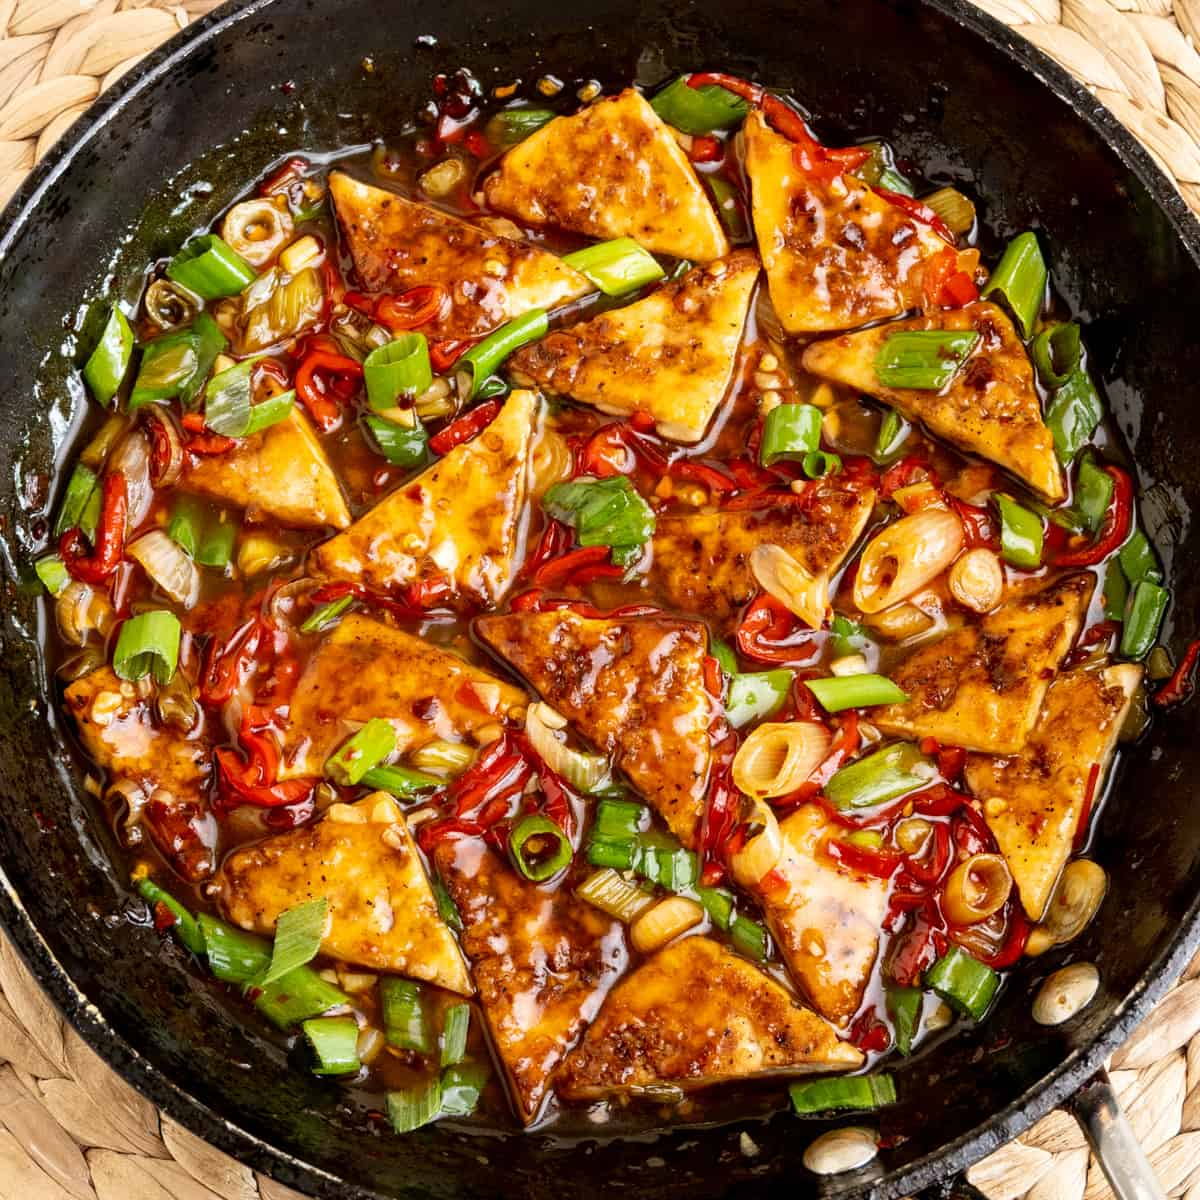 Pieces of fried tofu in a frying pan full of a colourful sauce with pieces of red pepper and spring onions.